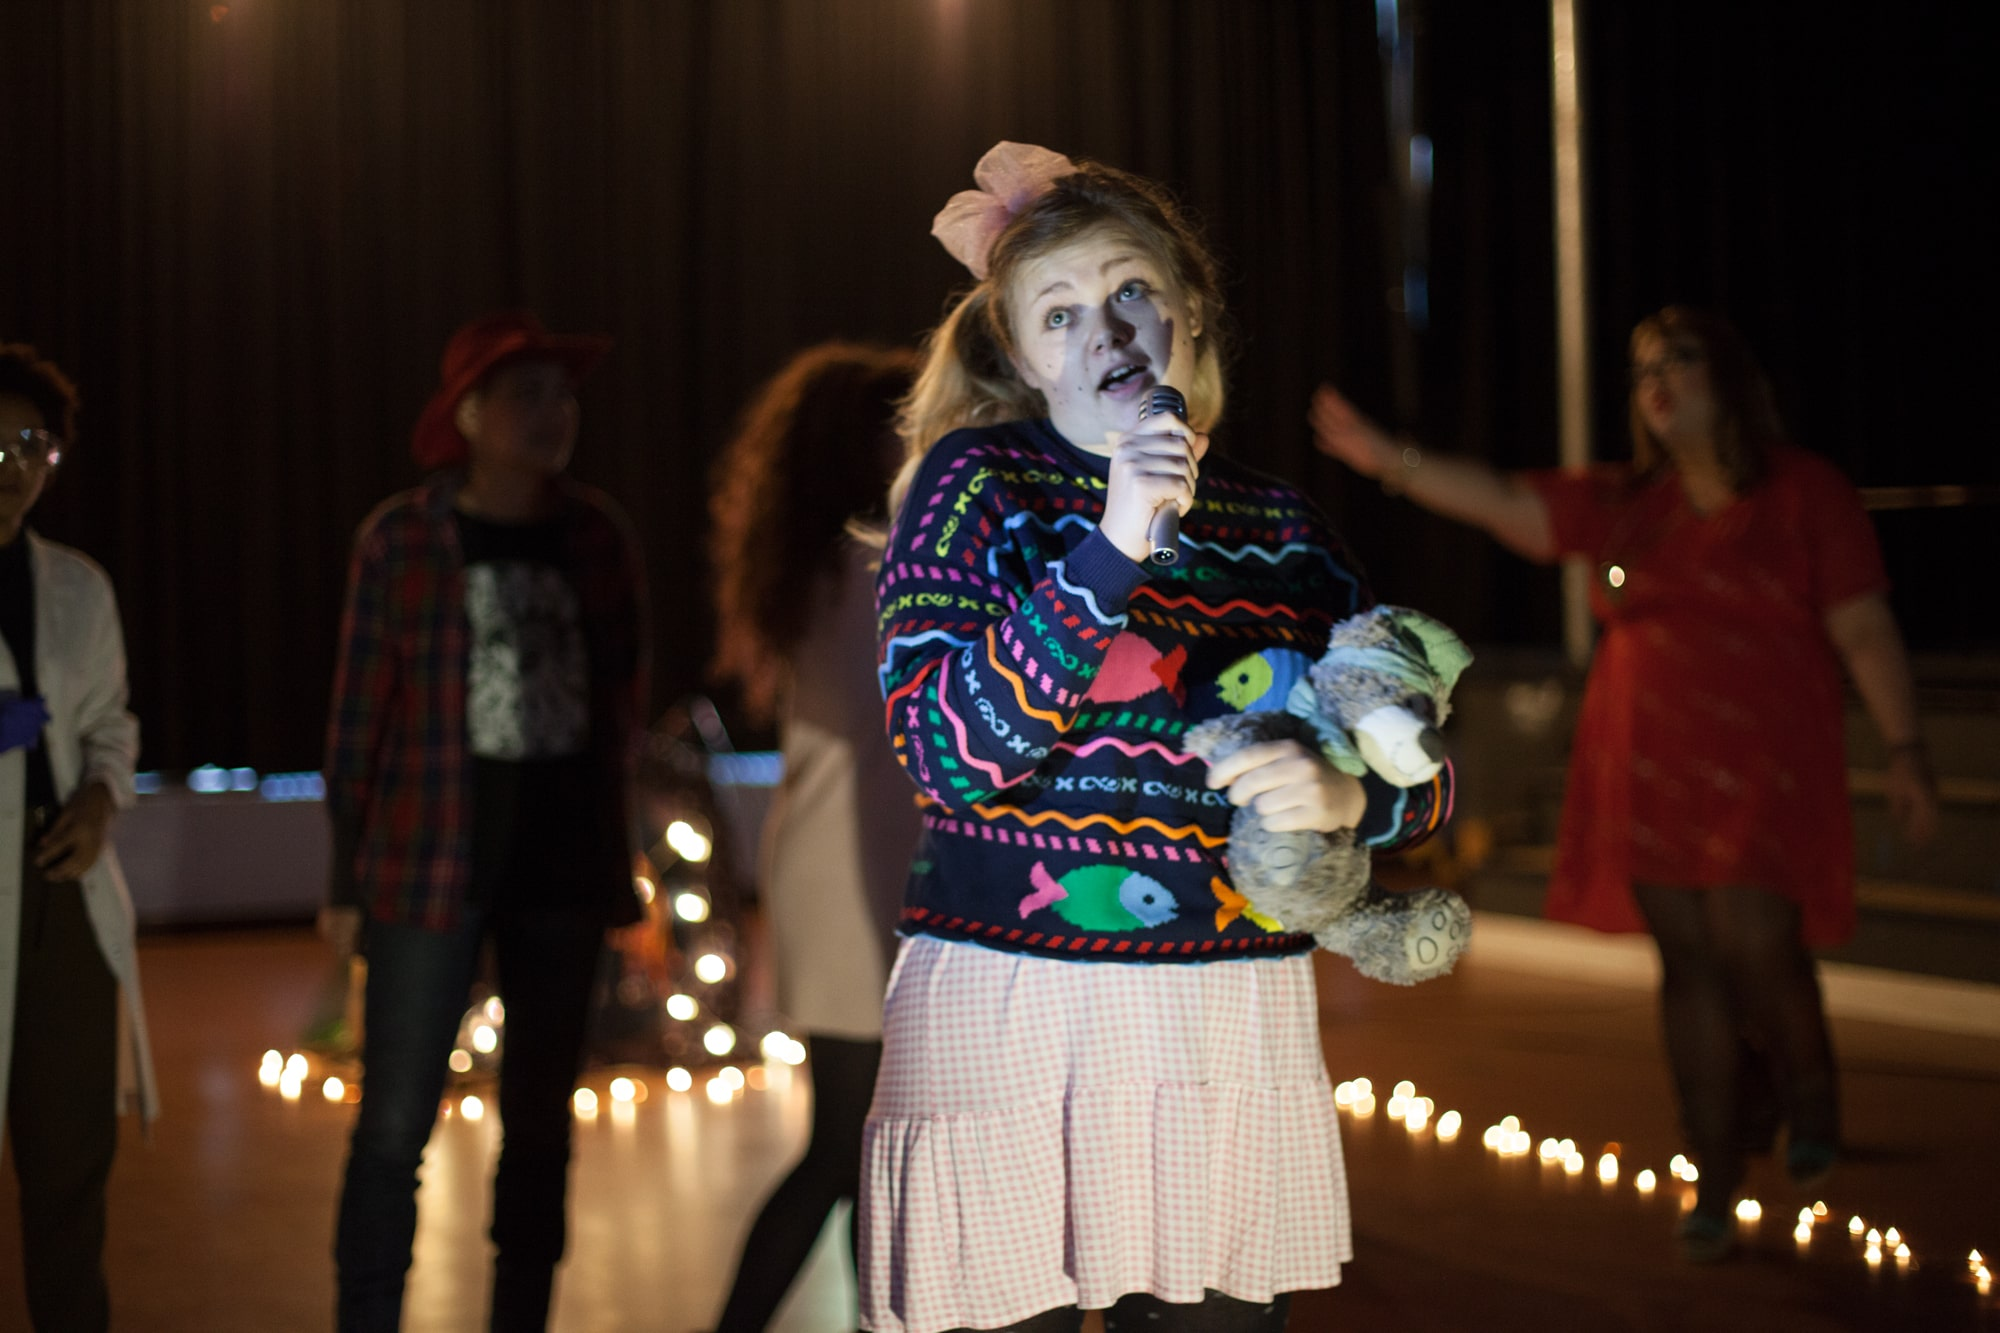 Act Attack theatre class performing girl in her 20s blonde hair dressed like a baby girl holding microphone